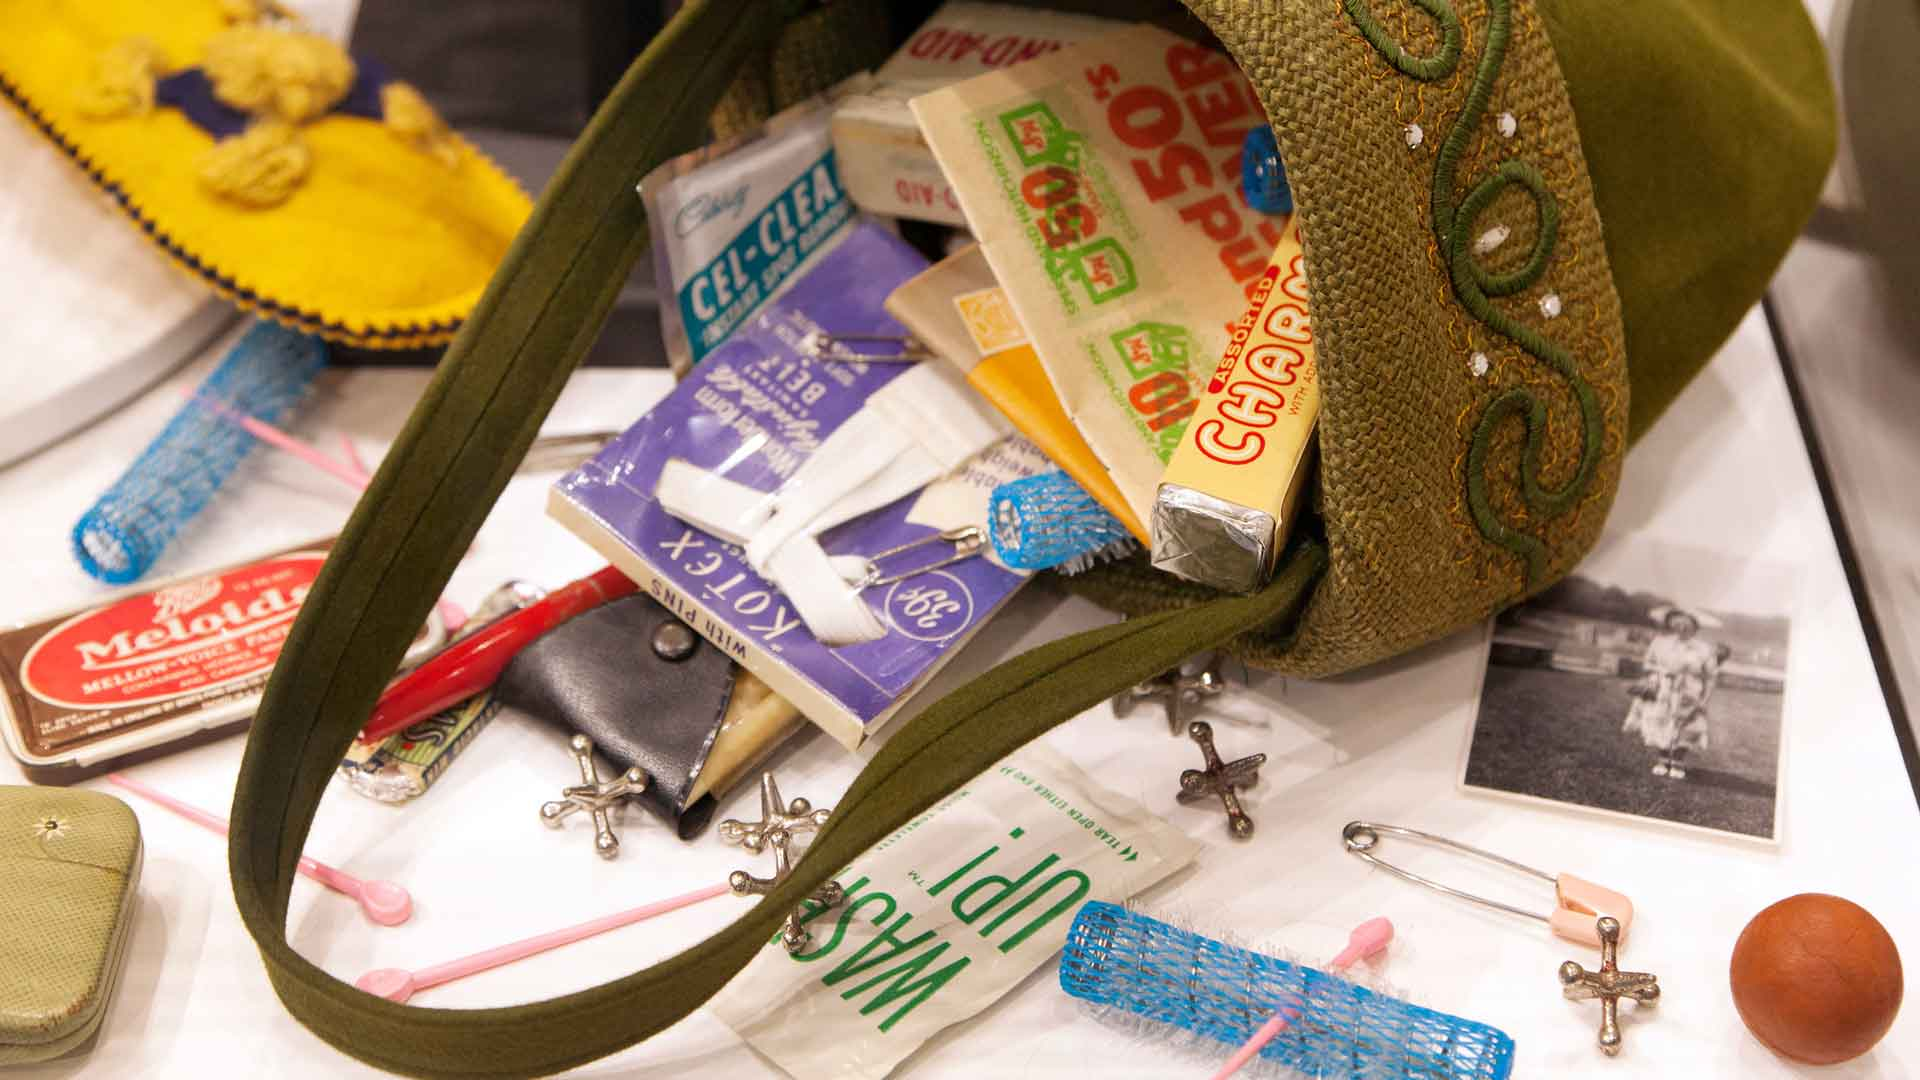 When it comes to purse contents, some things never change – they just take new forms.